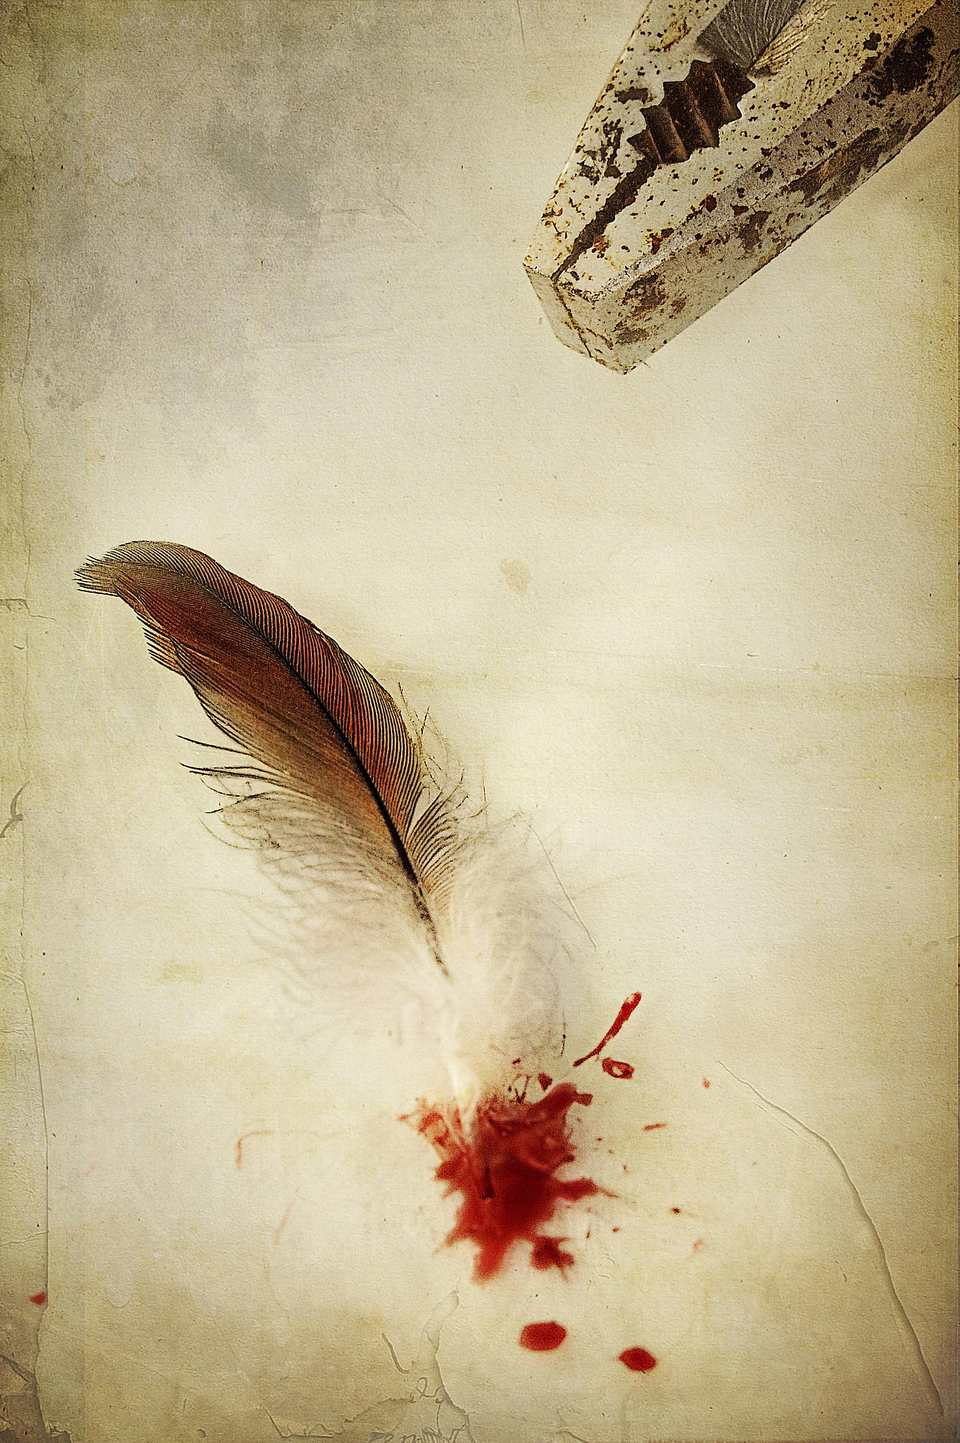 feather with blood